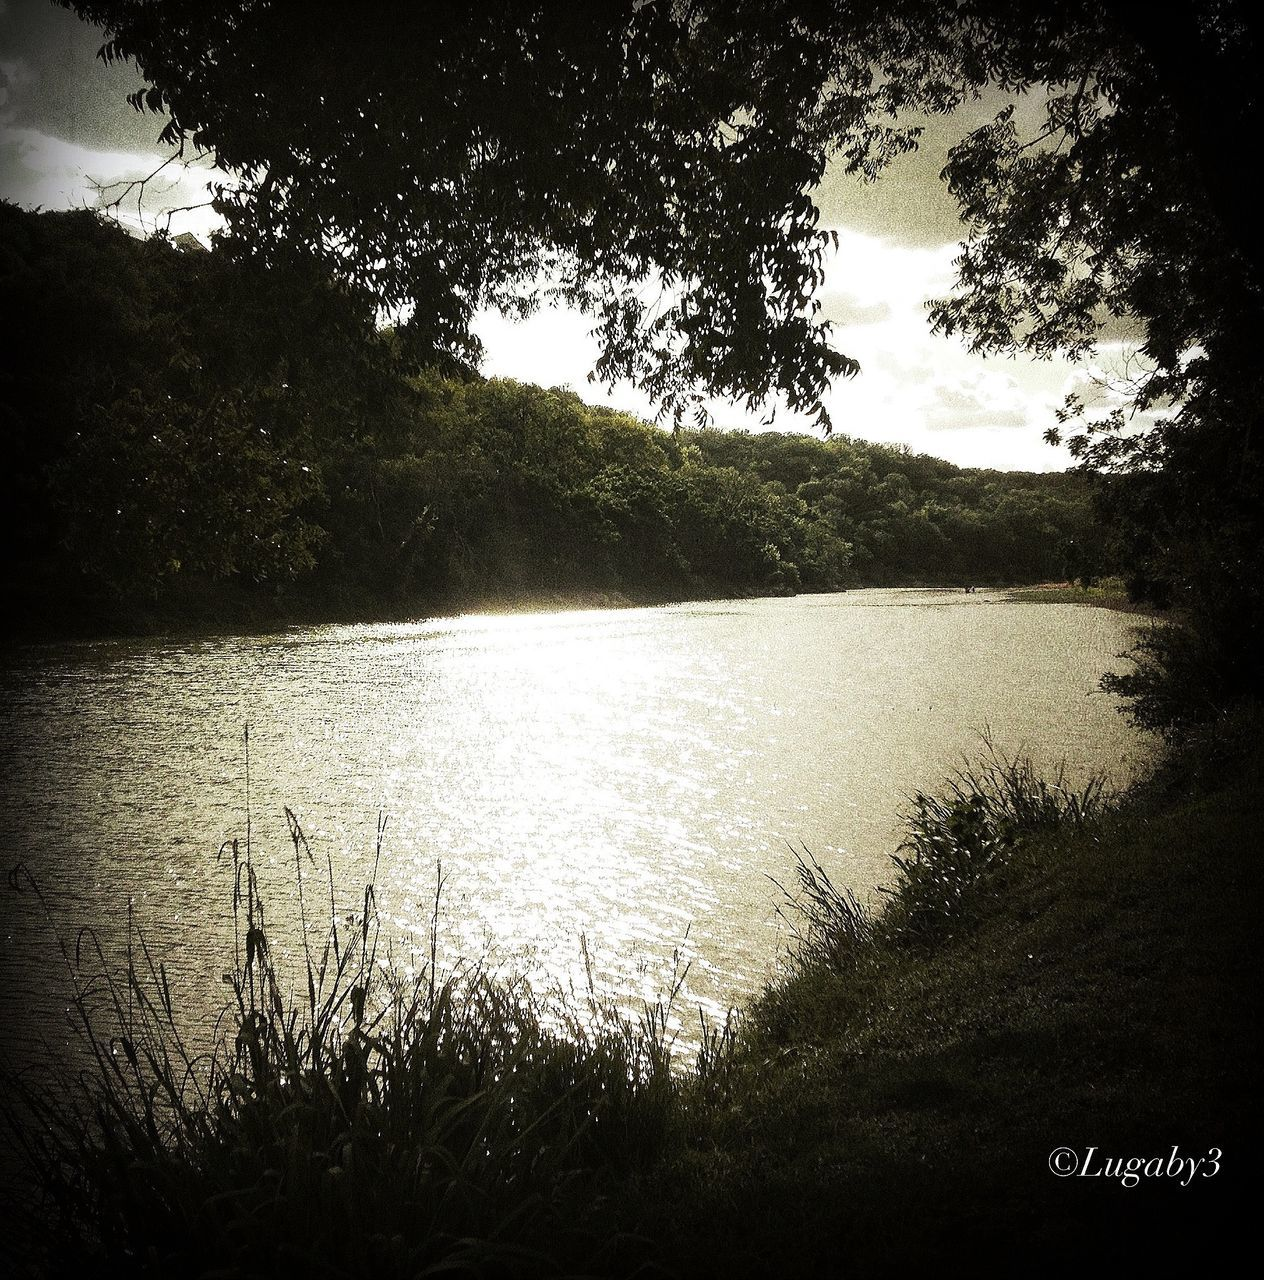 tree, water, lake, tranquility, nature, tranquil scene, scenics, no people, outdoors, growth, beauty in nature, day, sky, vacations, grass